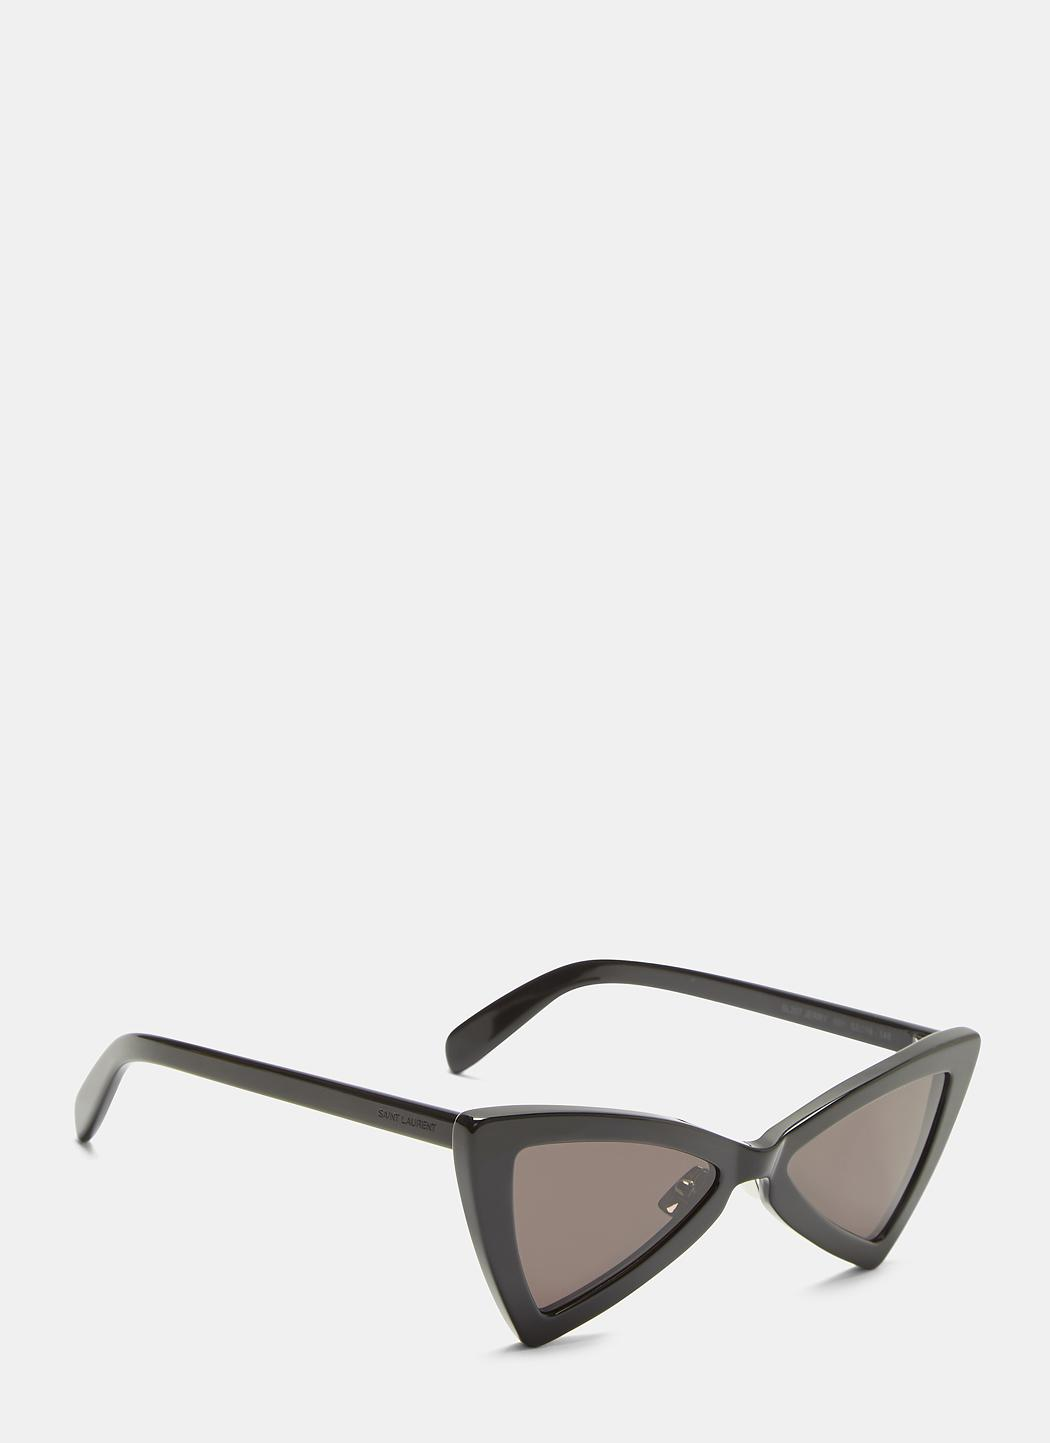 6fb30596d3 Saint Laurent New Wave 207 Jerry Triangular Sunglasses In Black in ...